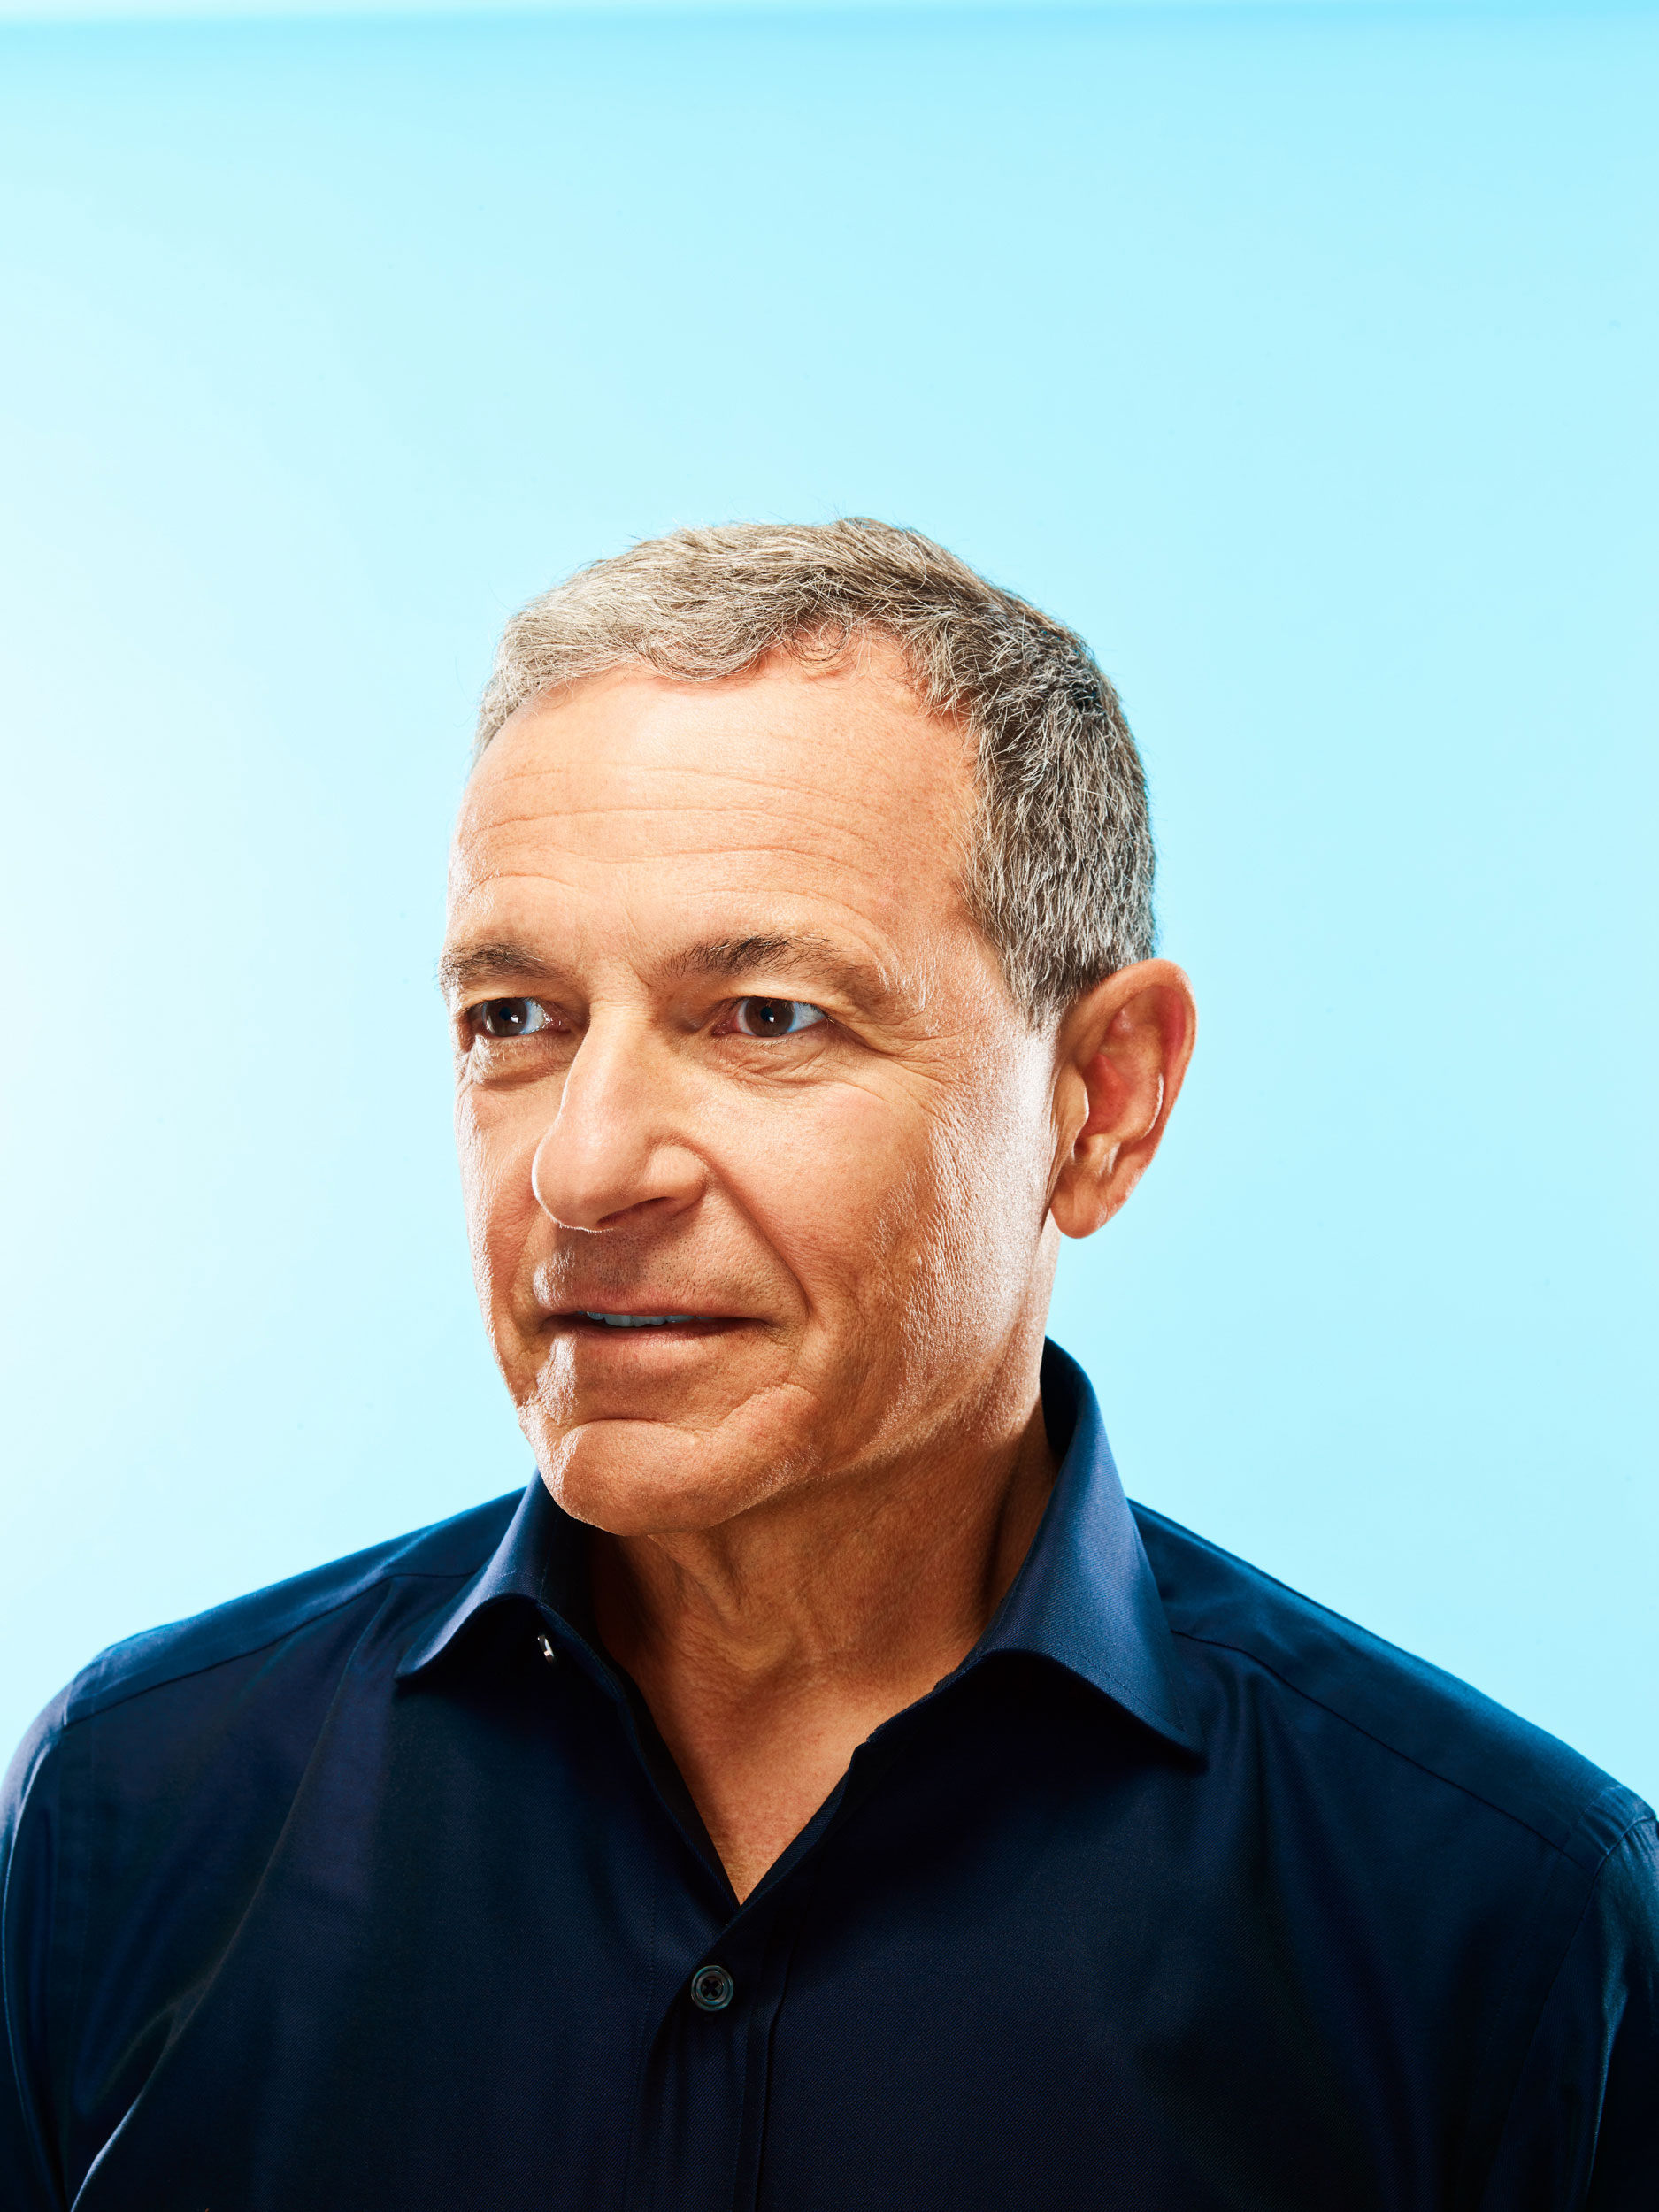 Bob Iger, CEO of Disney, Burbank, California, 2018